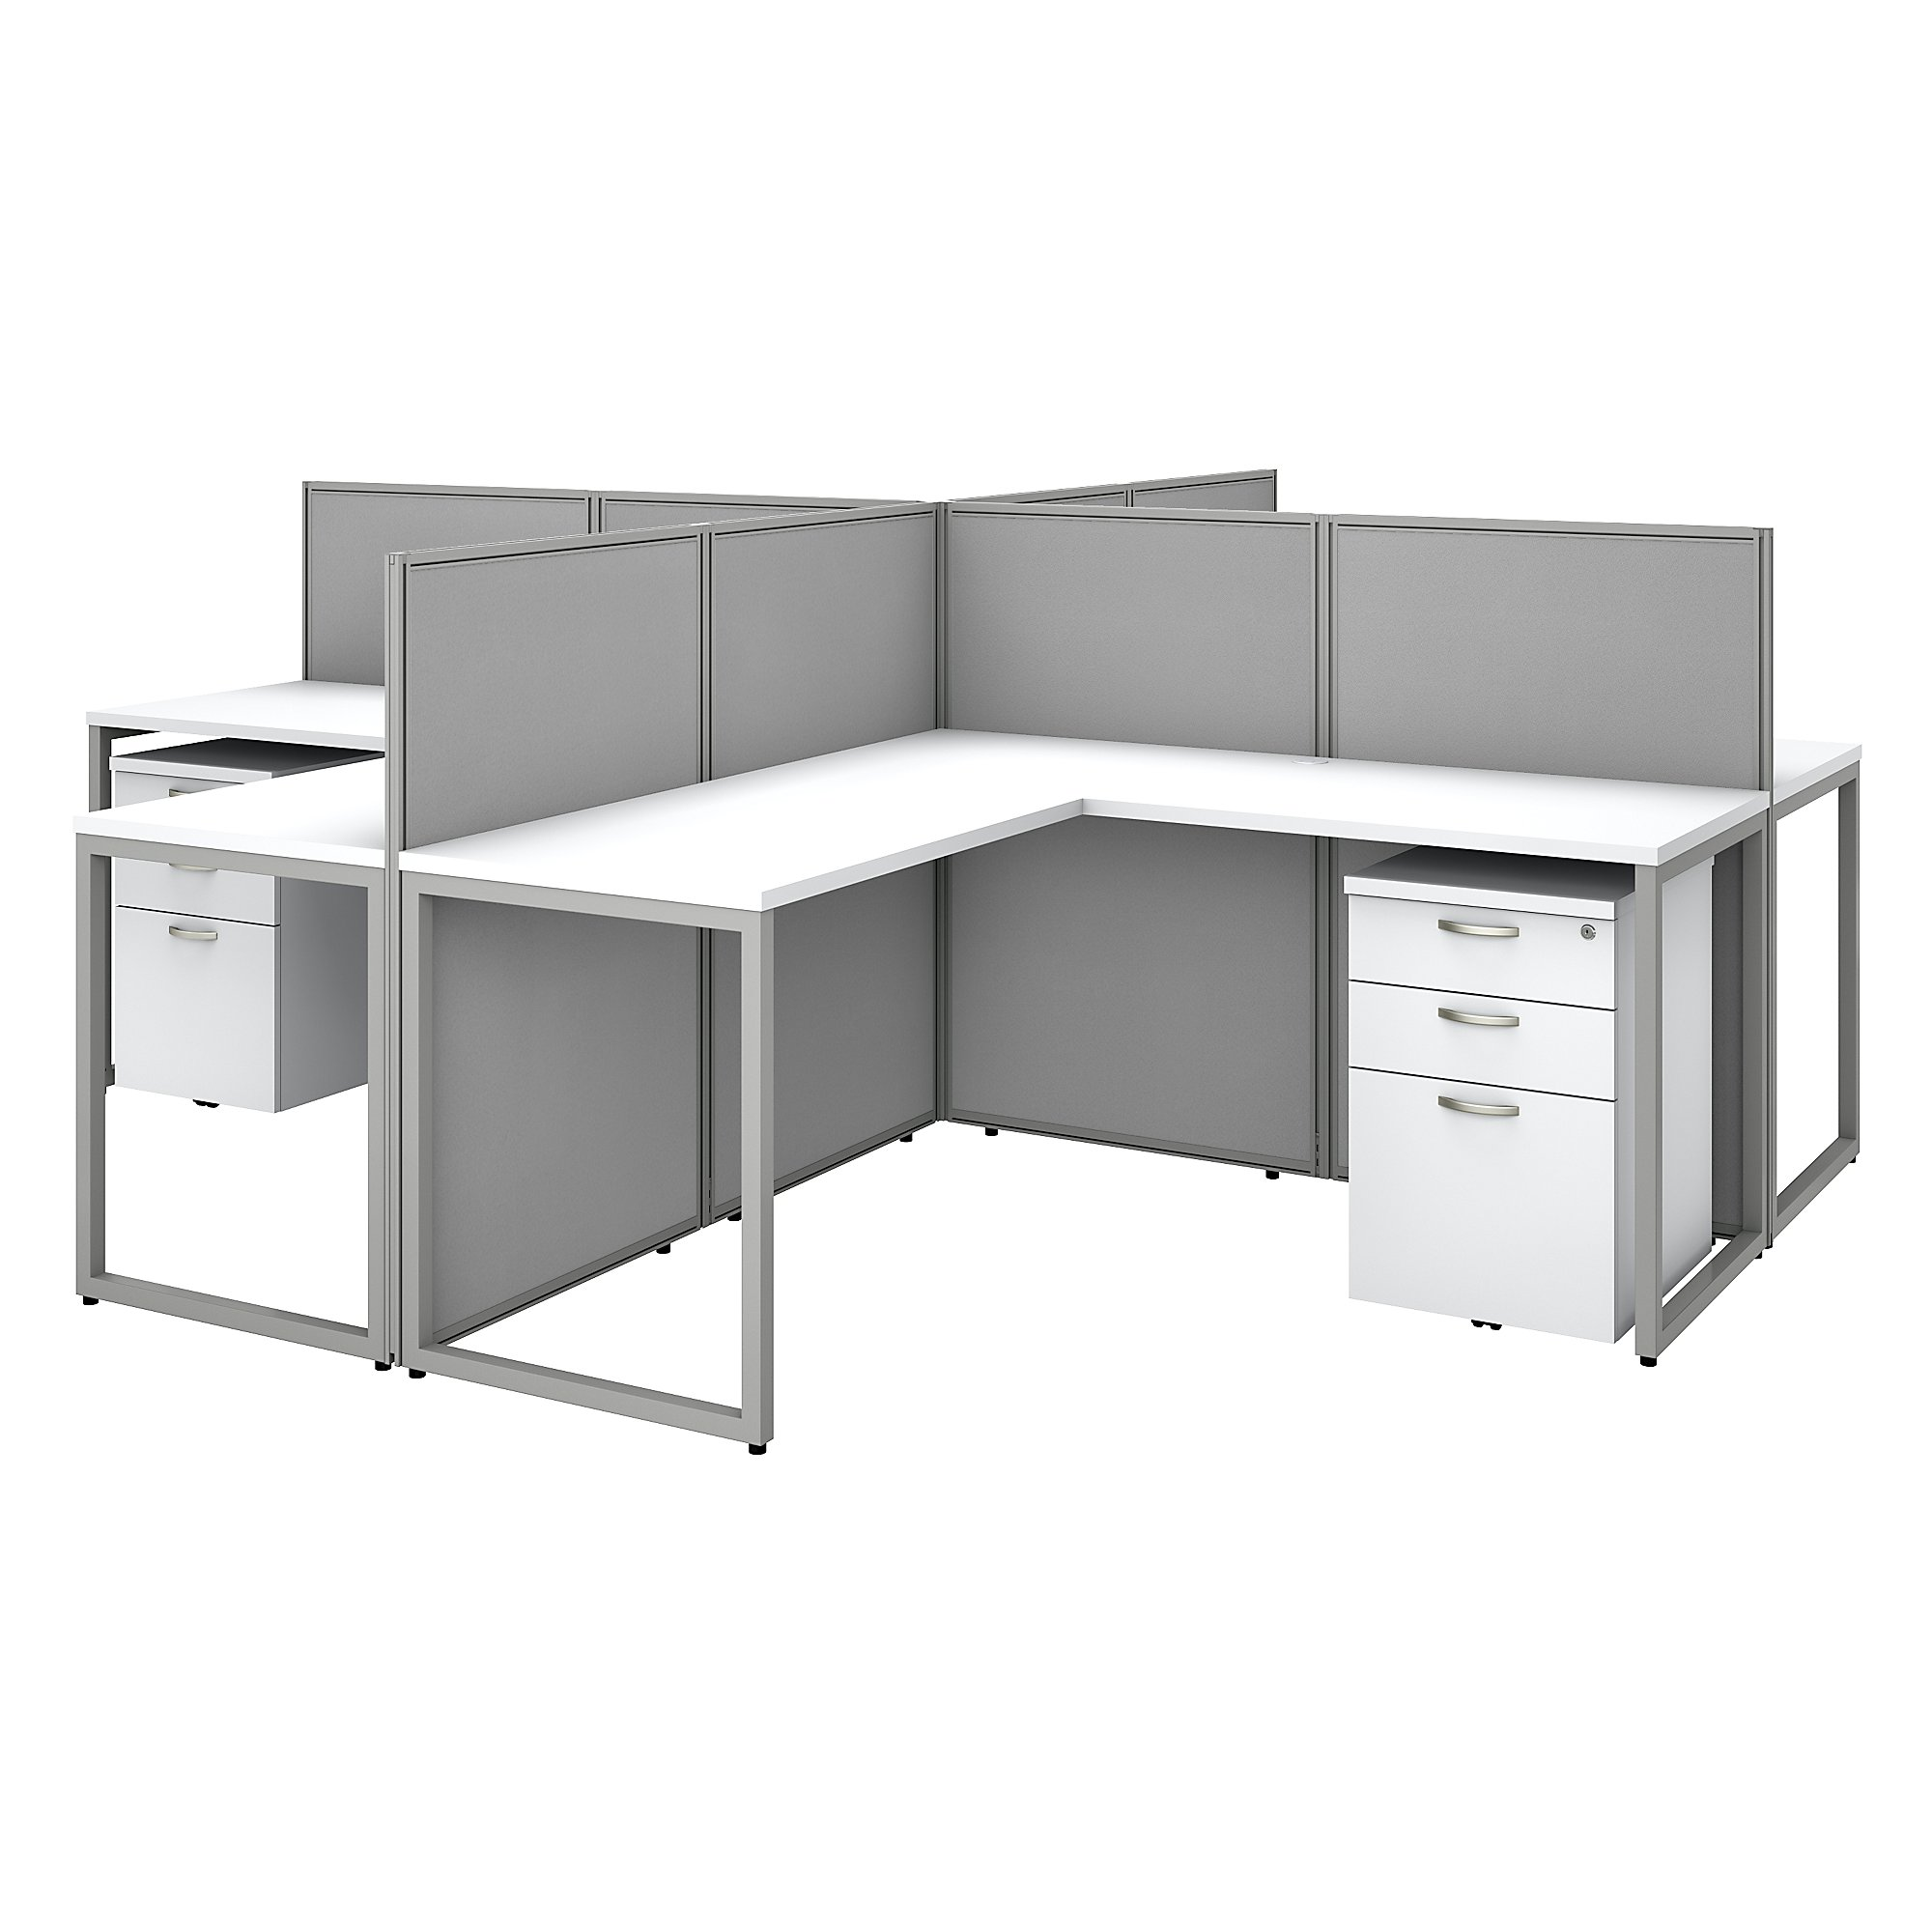 easy office 4 person modular cubicle configuration